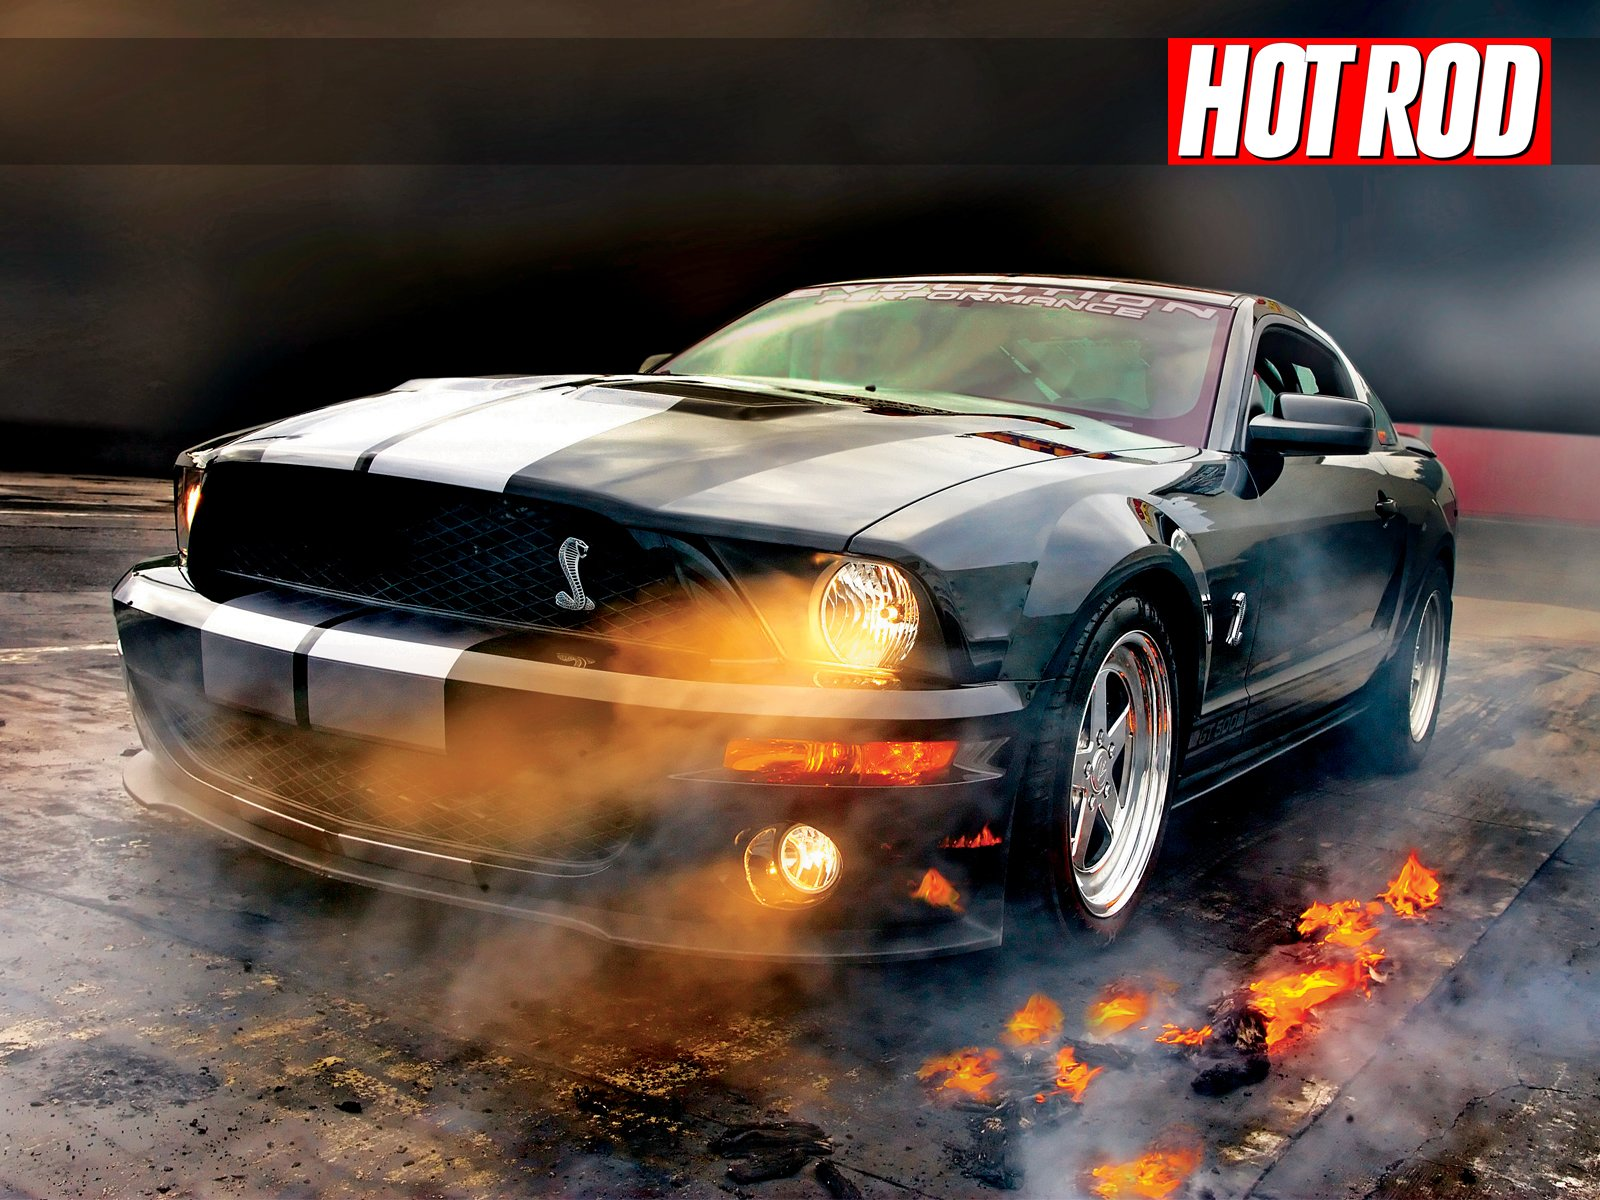 Latest Wallpapers Autos Tunning Coches Tuning Wallpapers De Autos Free Download